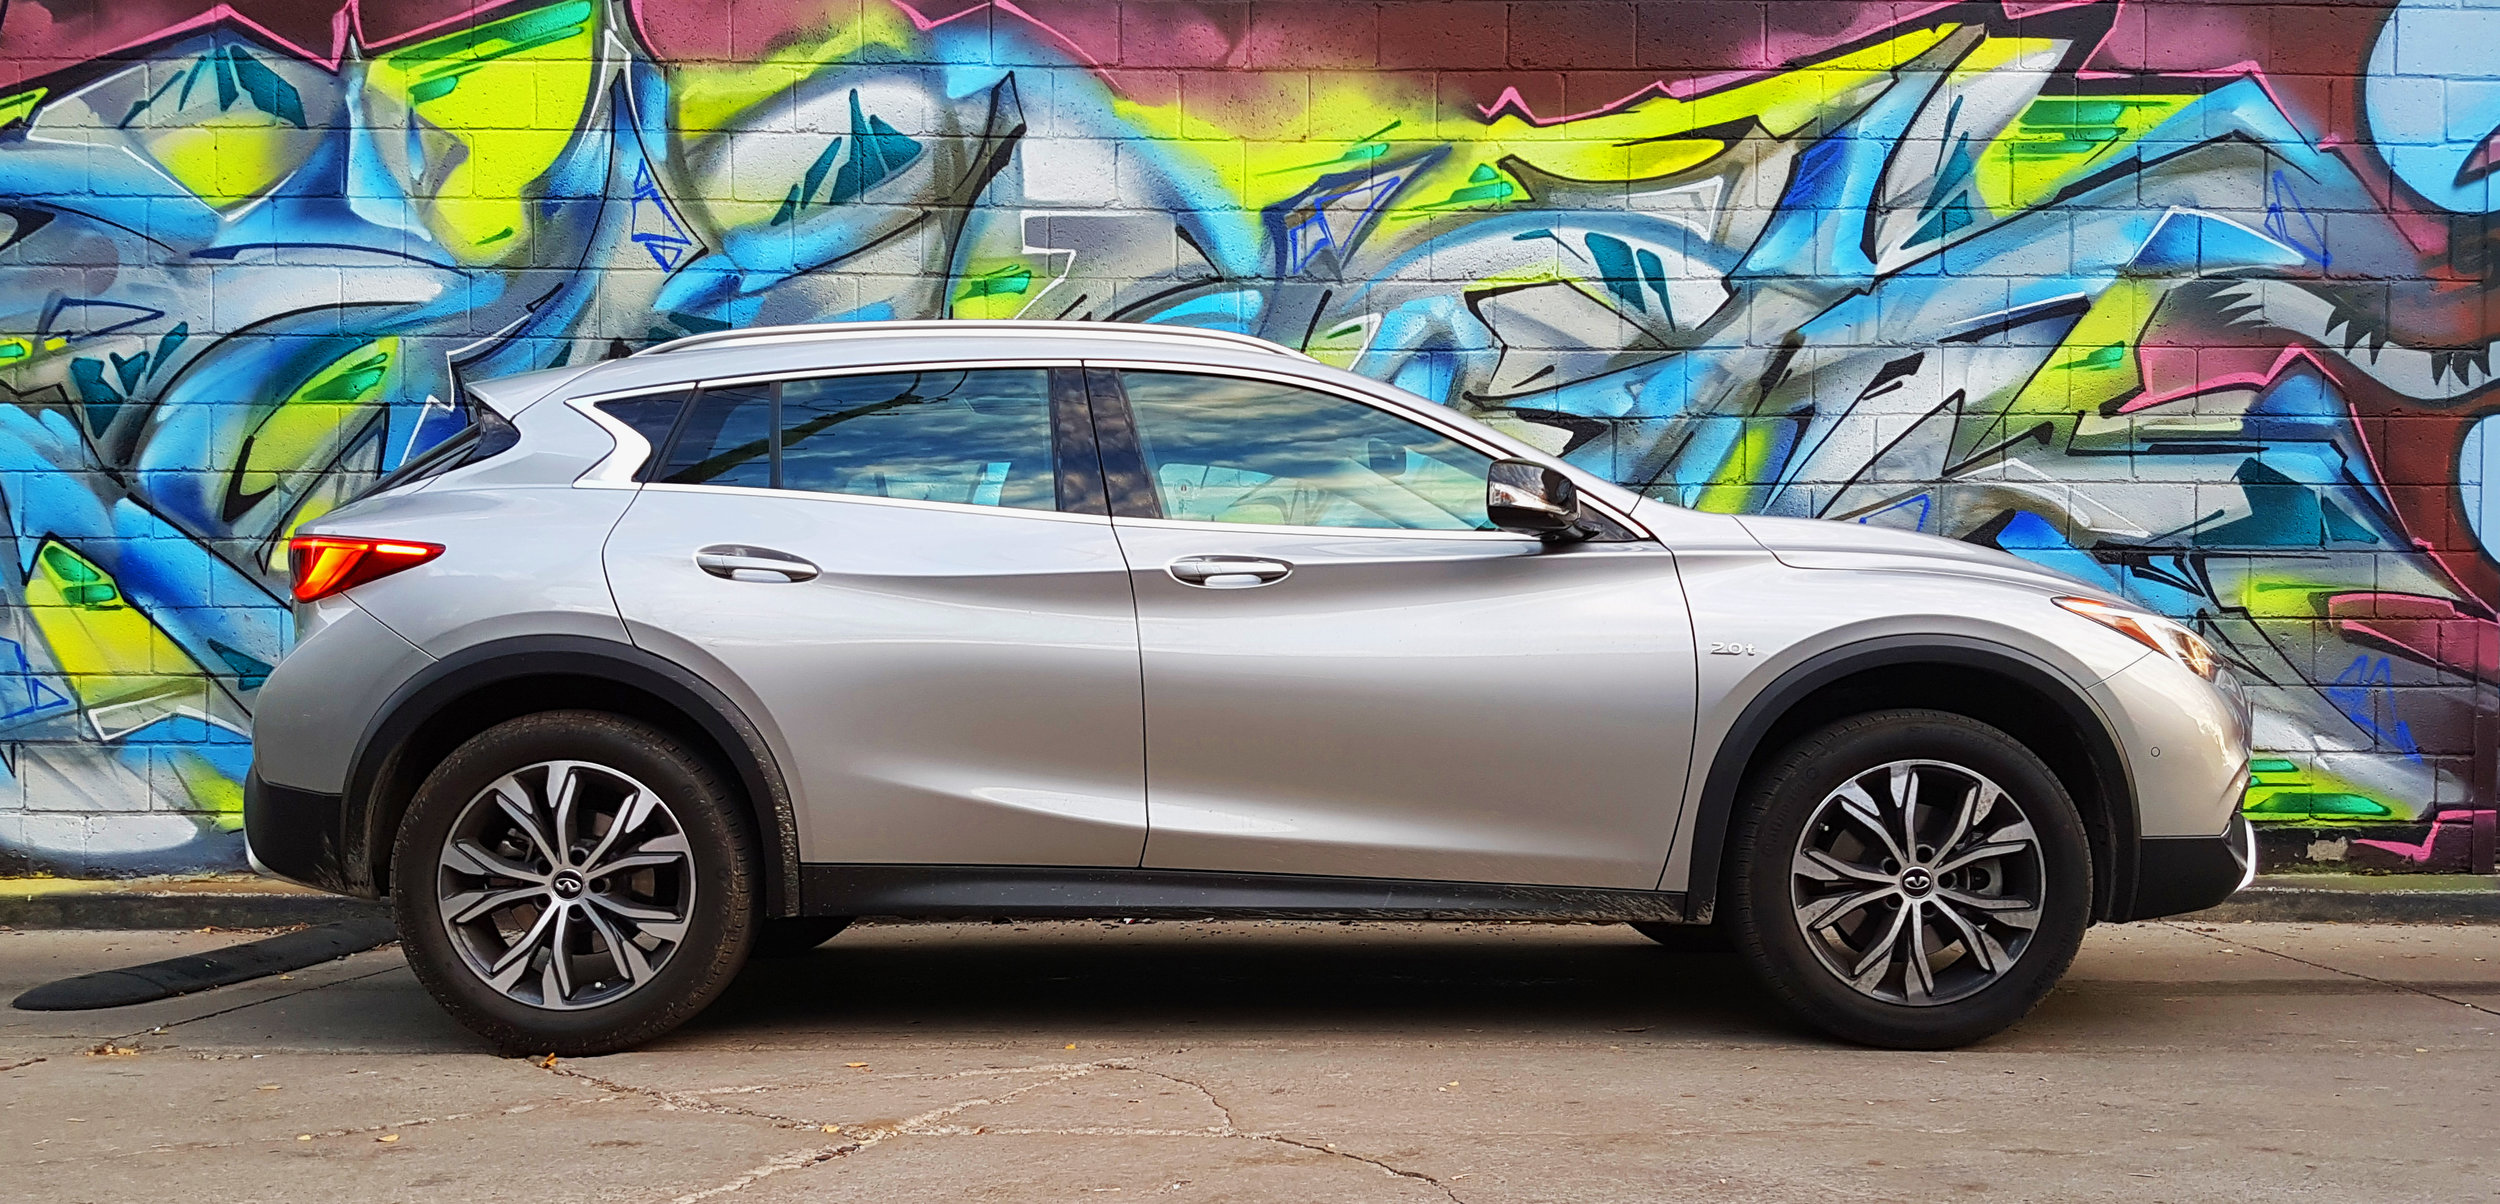 Infiniti's new crescent-shaped c-pillar is not suuuuper practical for visibility, but it looks  damn good.